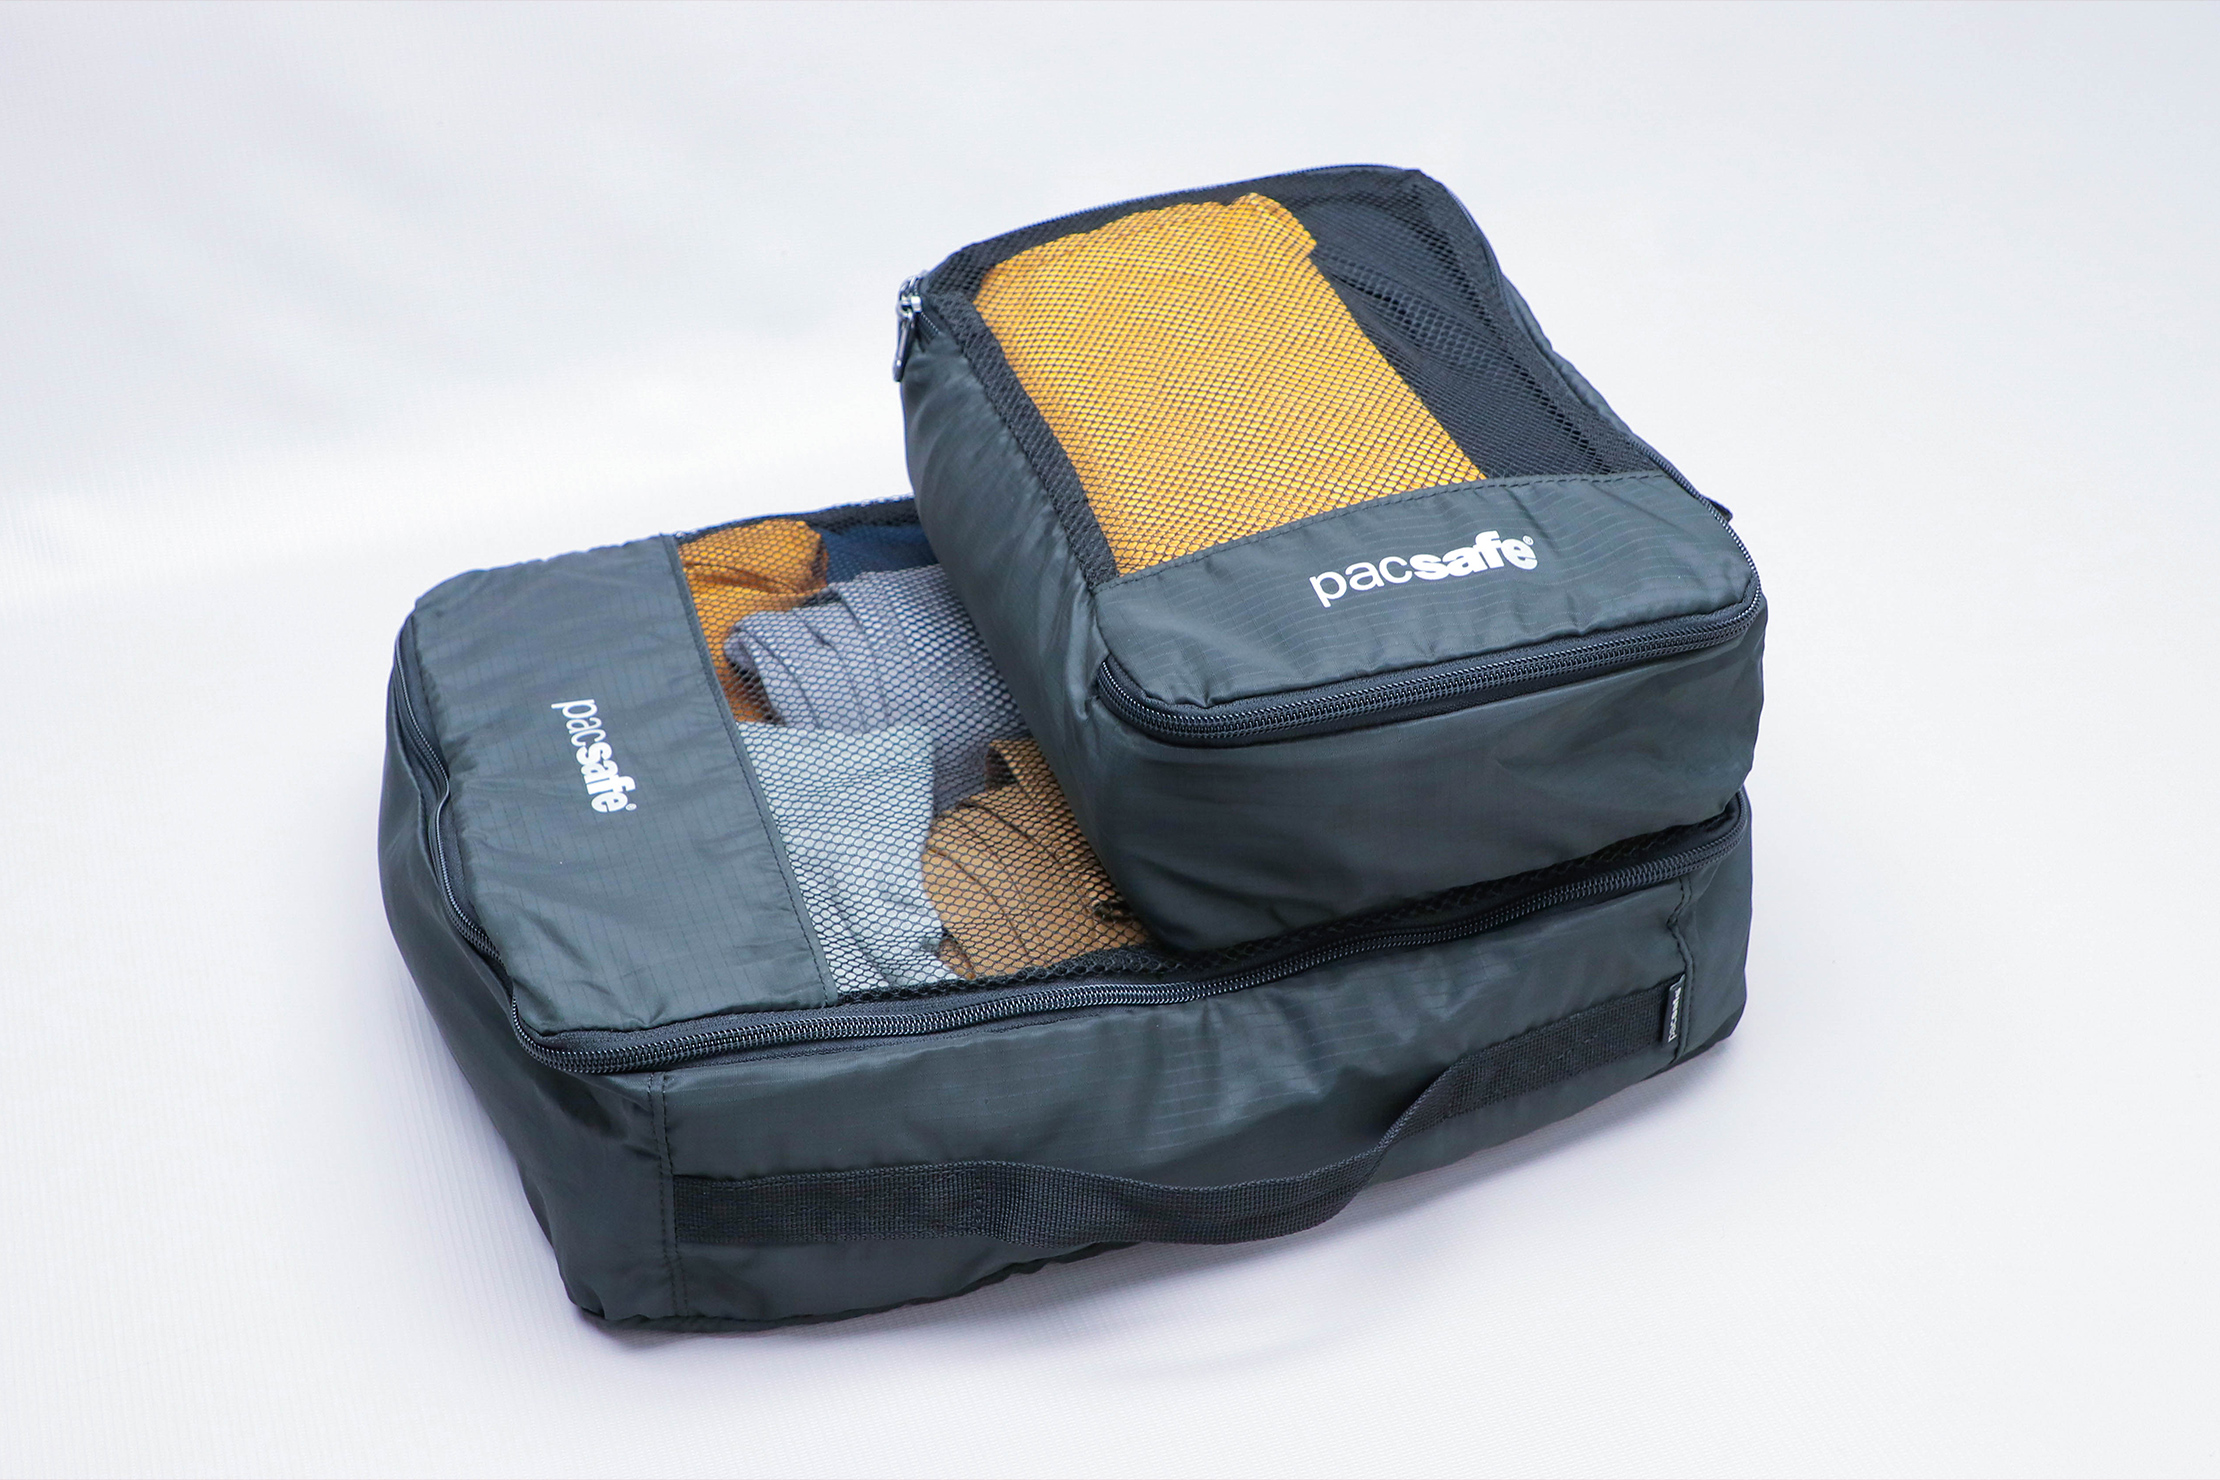 Pacsafe Travel Packing Cubes Stacked